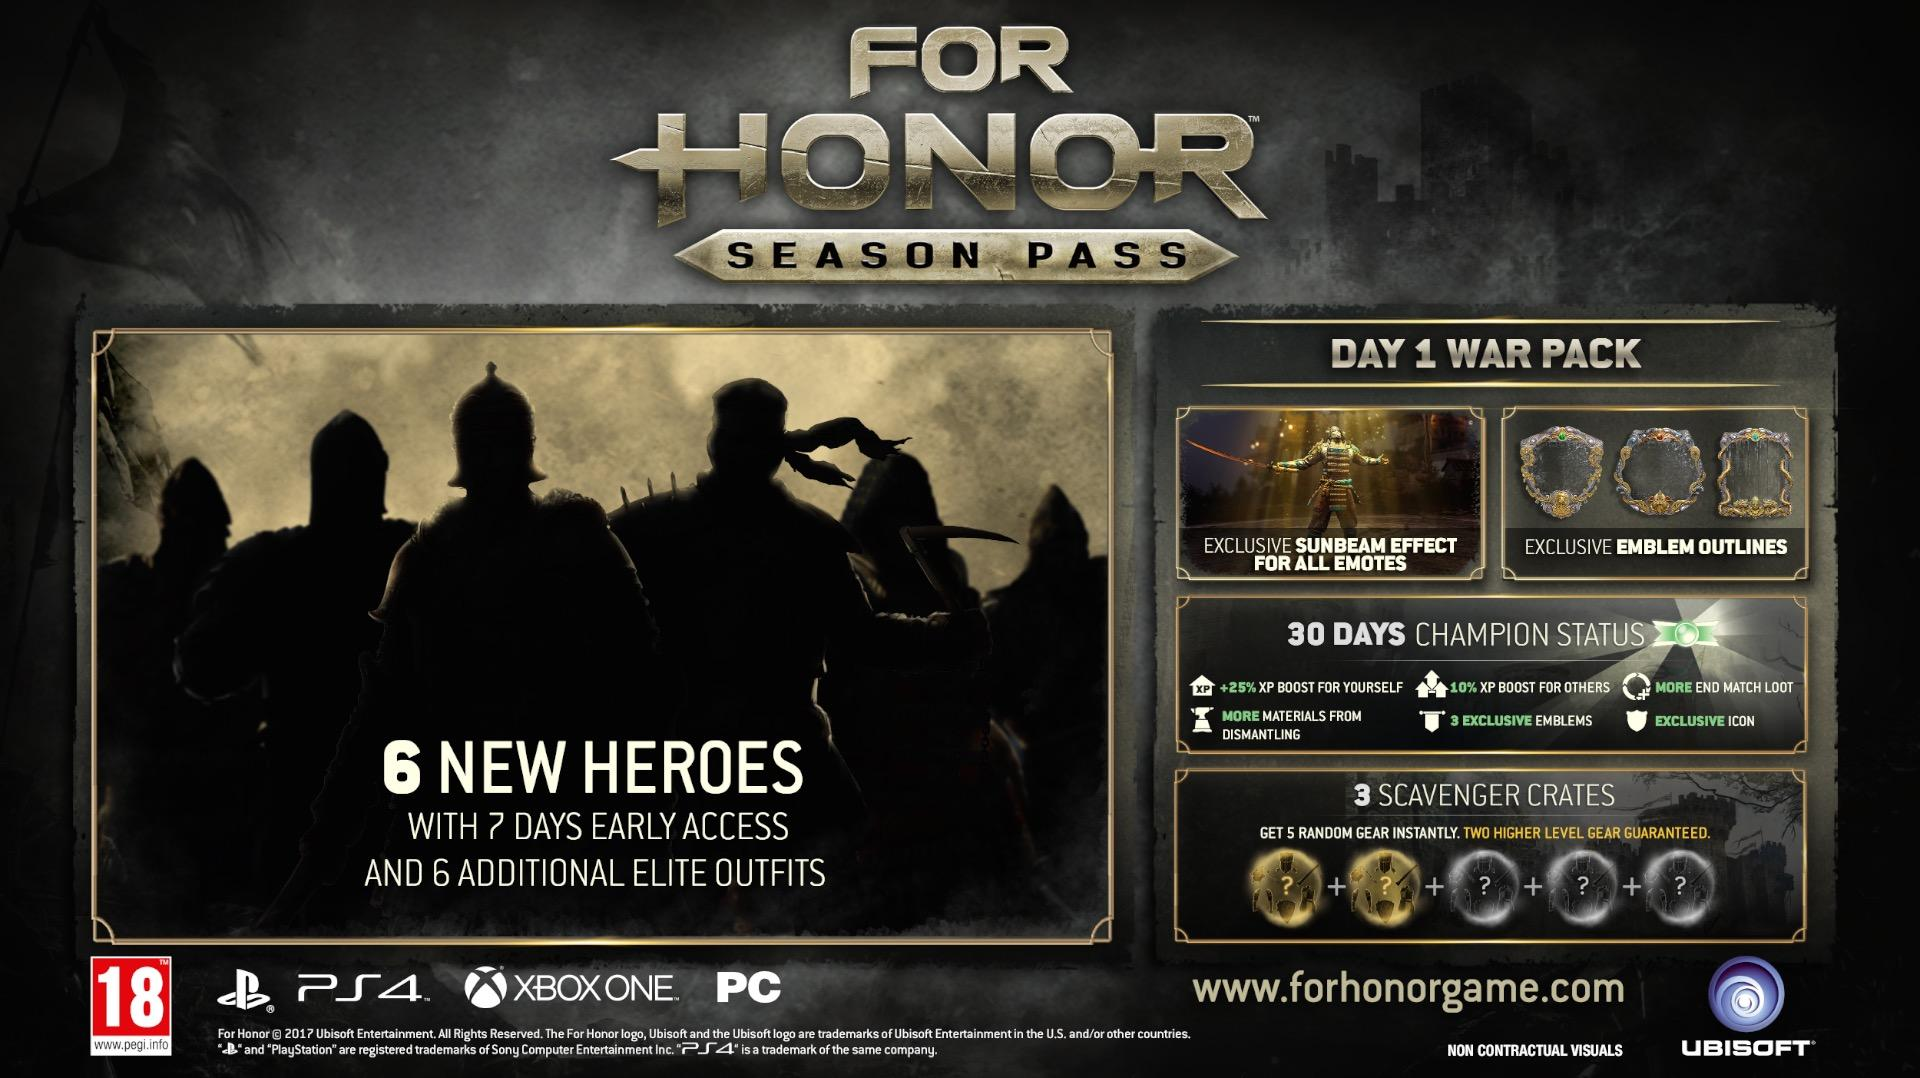 For honor 39 s season pass revealed includes six new heroes xbox one xbox 360 news at - When is for honor season 6 ...